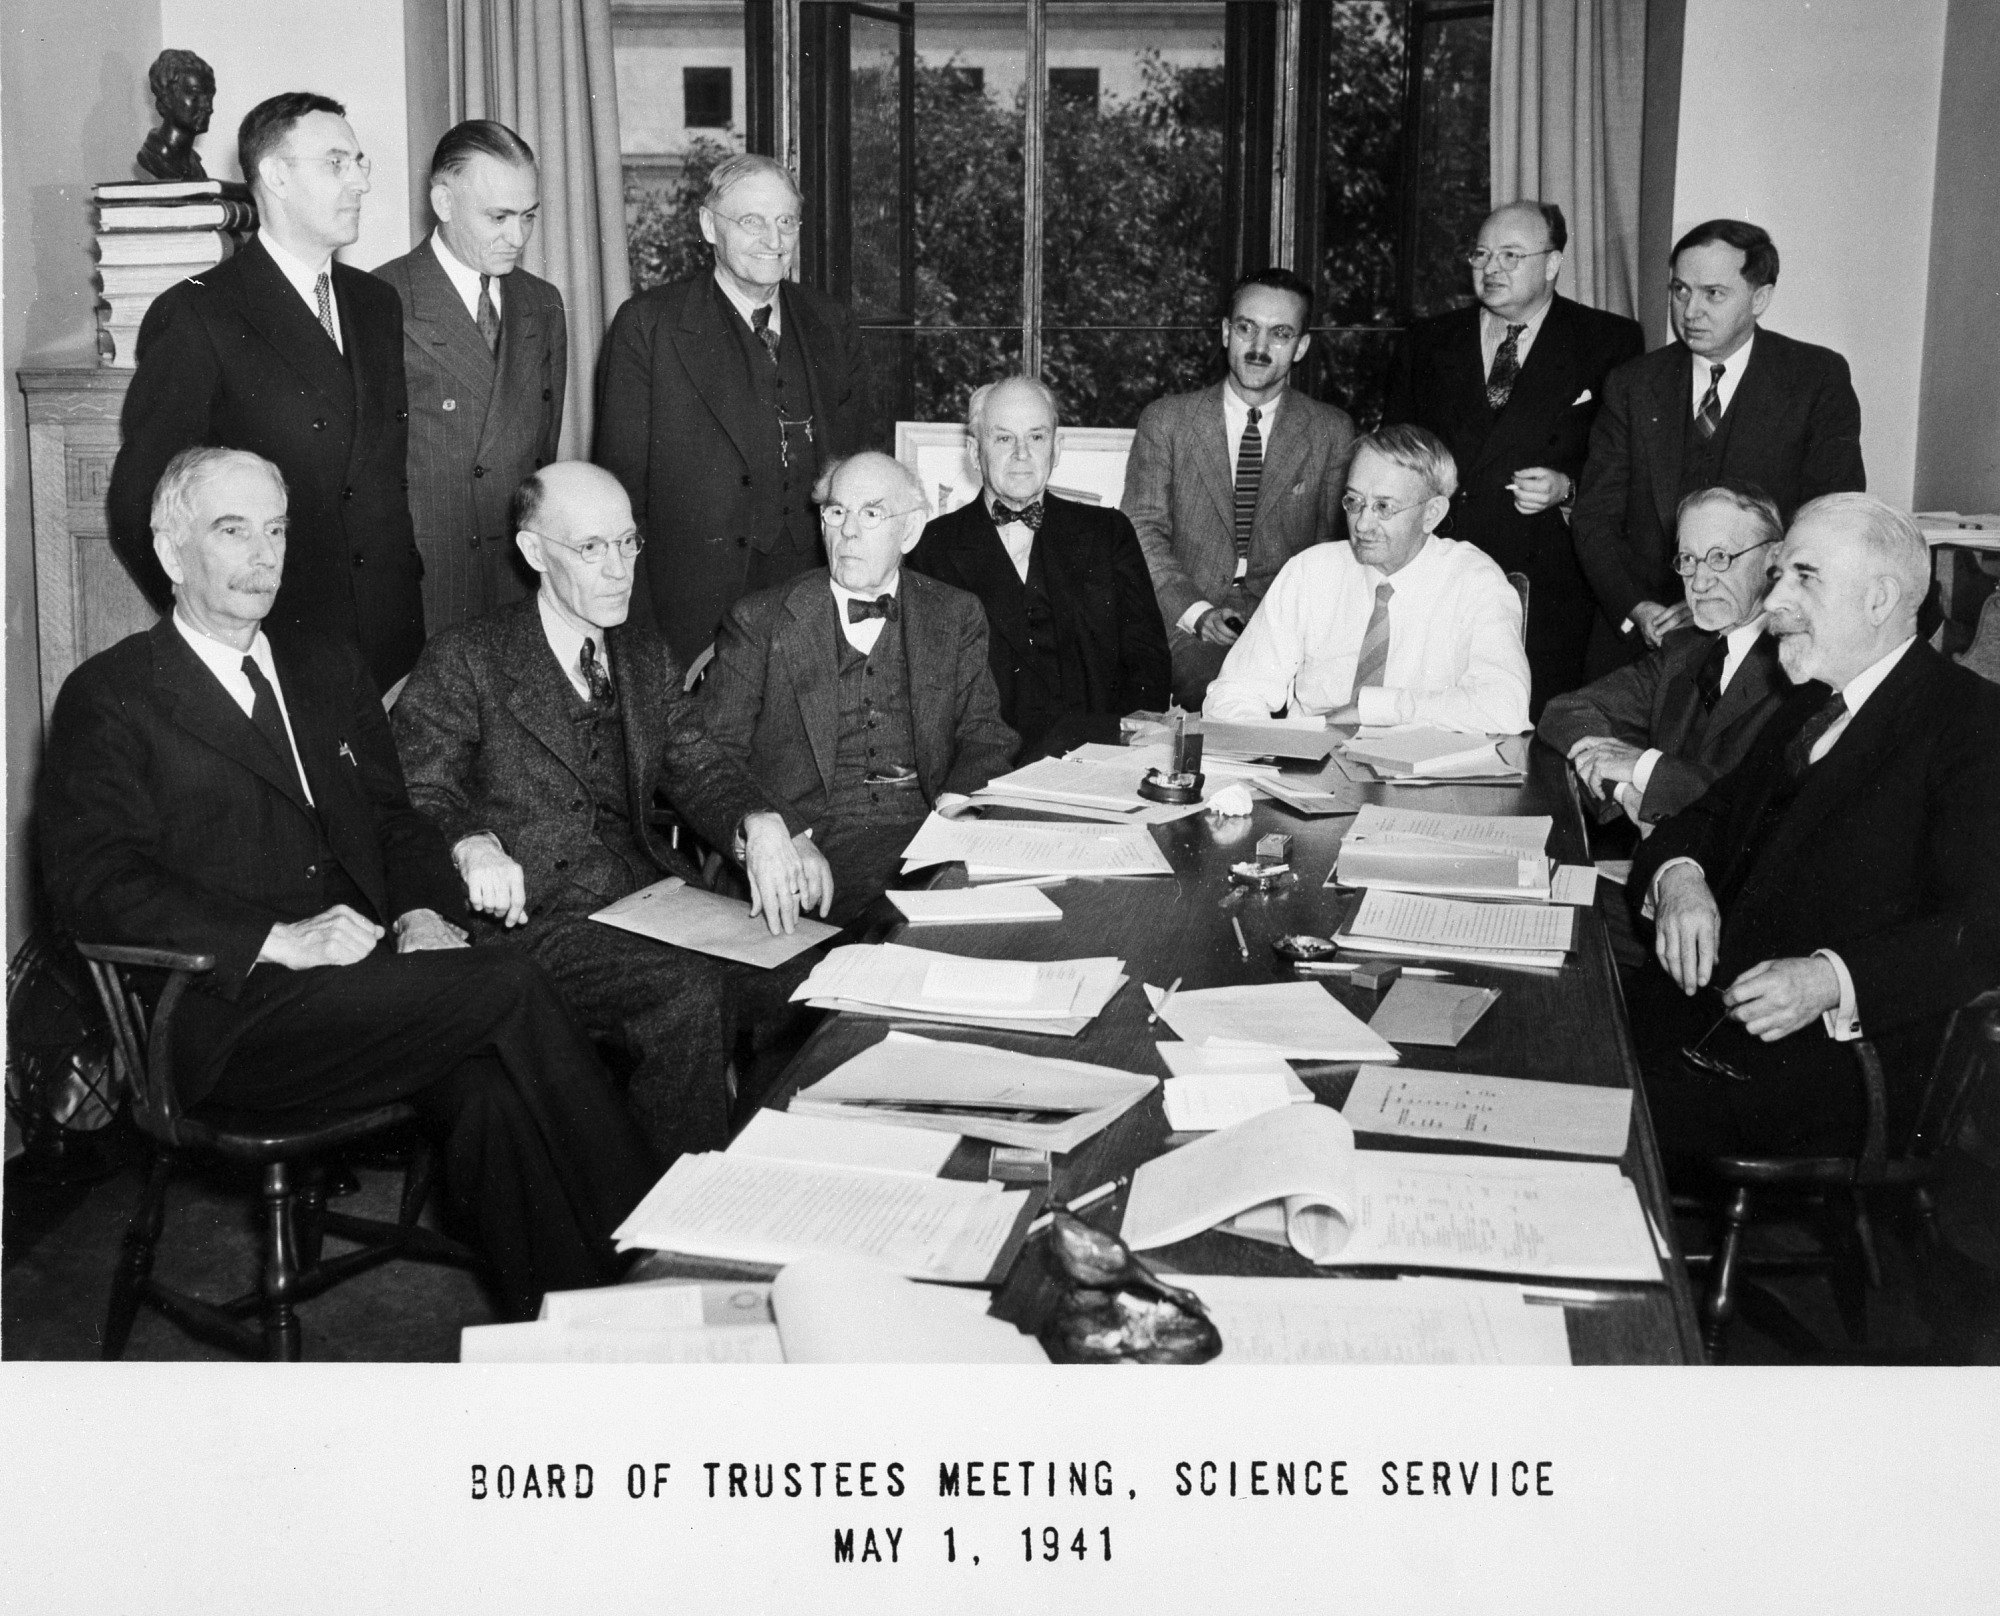 Science Service Board of Trustees Meeting